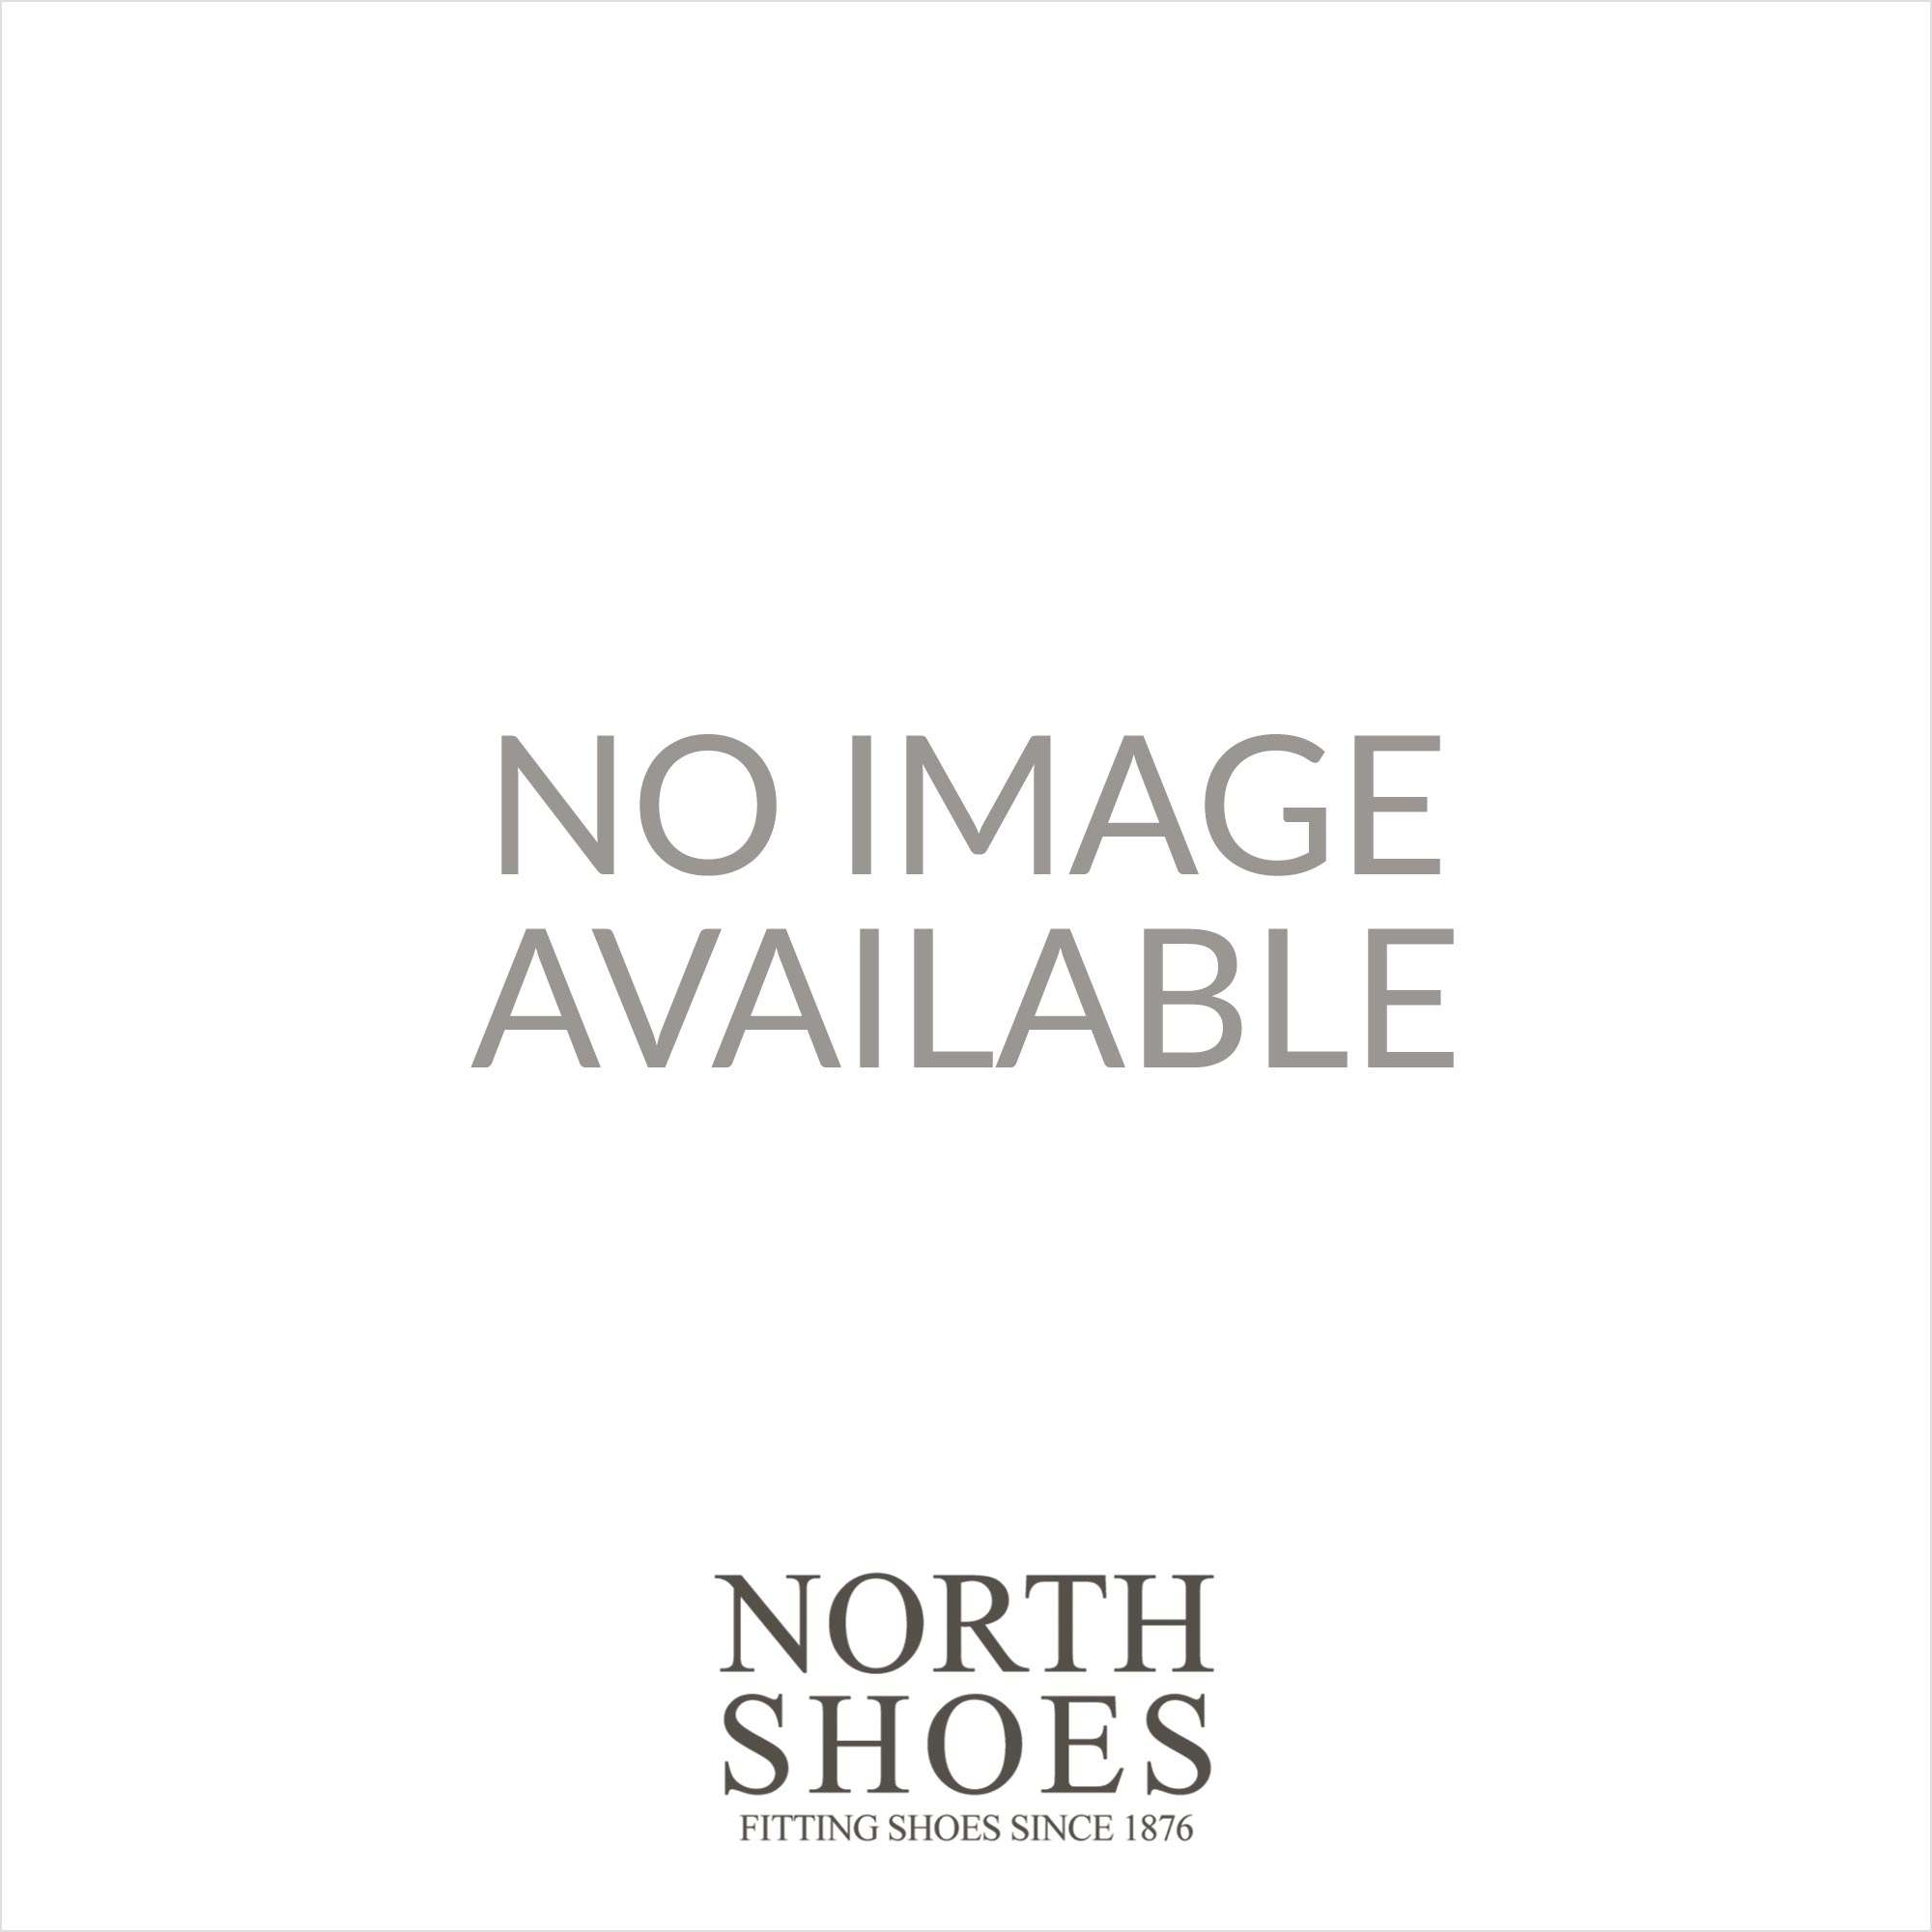 2dfb95f30628 Clarks Vendra Bloom Navy Suede Leather Womens Slip On Court Wedge Shoe -  Clarks from North Shoes UK